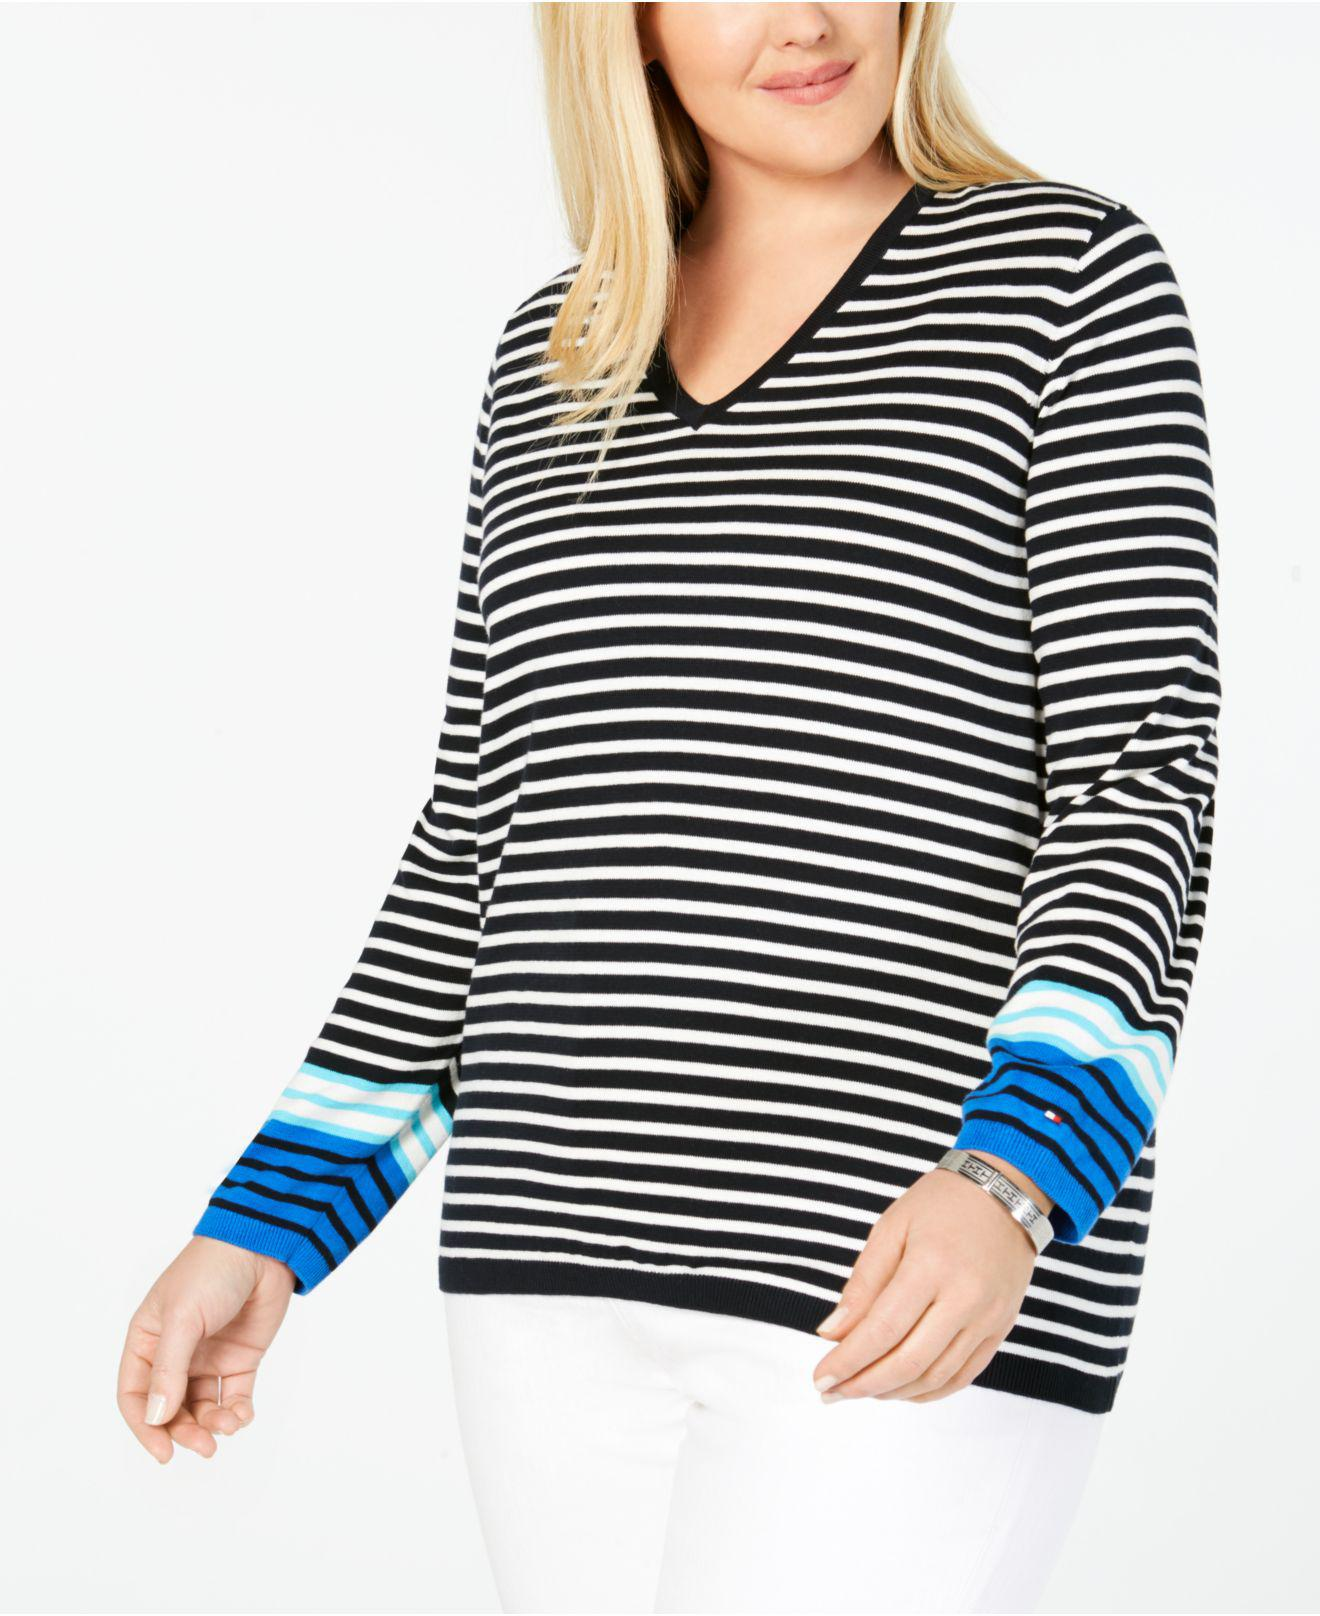 2cb9bb913 Lyst - Tommy Hilfiger Plus Size Cotton Striped V-neck Sweater ...